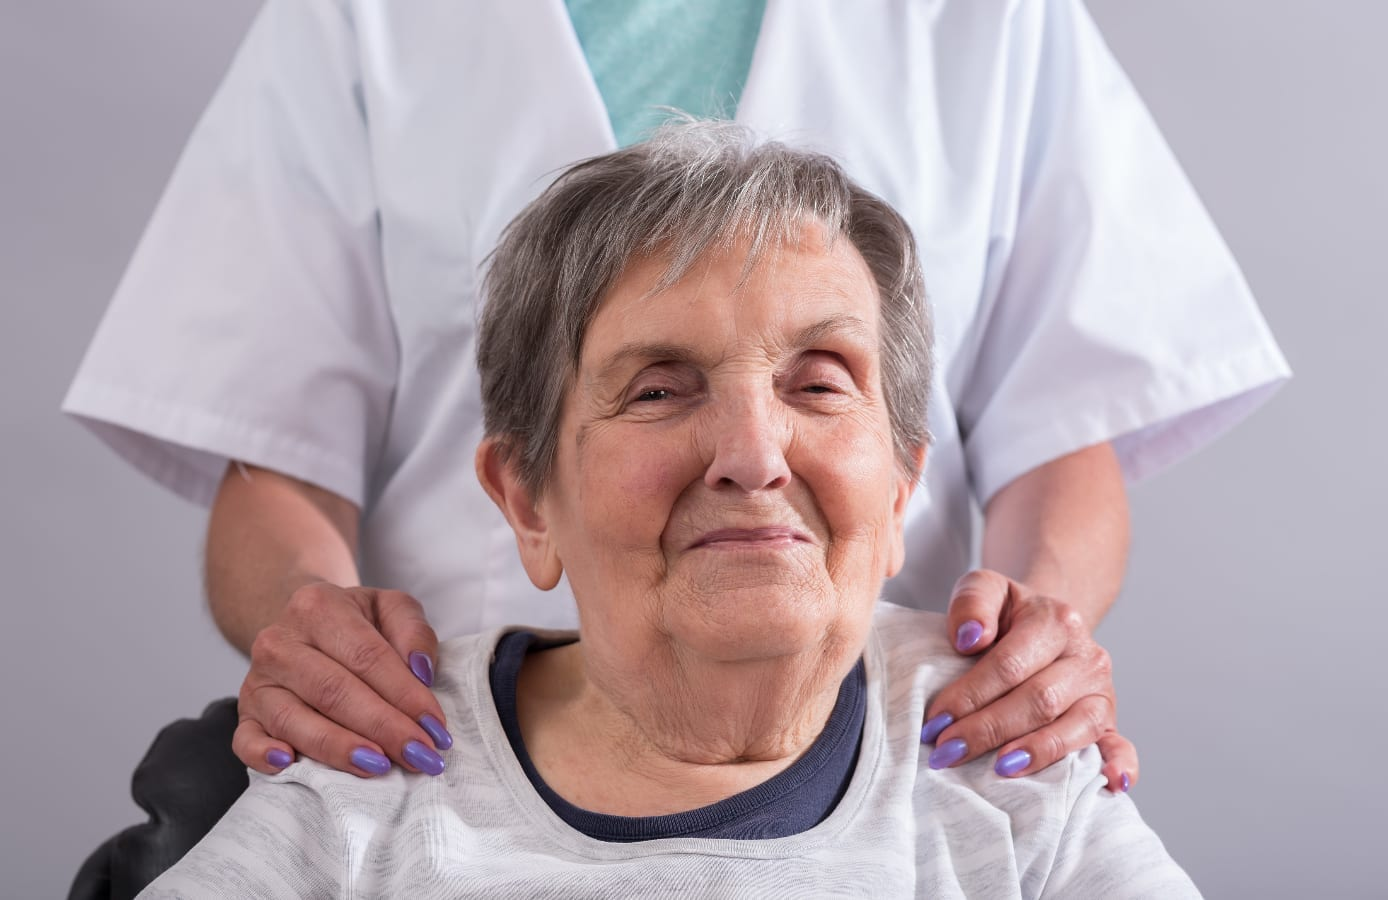 Providing Care with Dignity